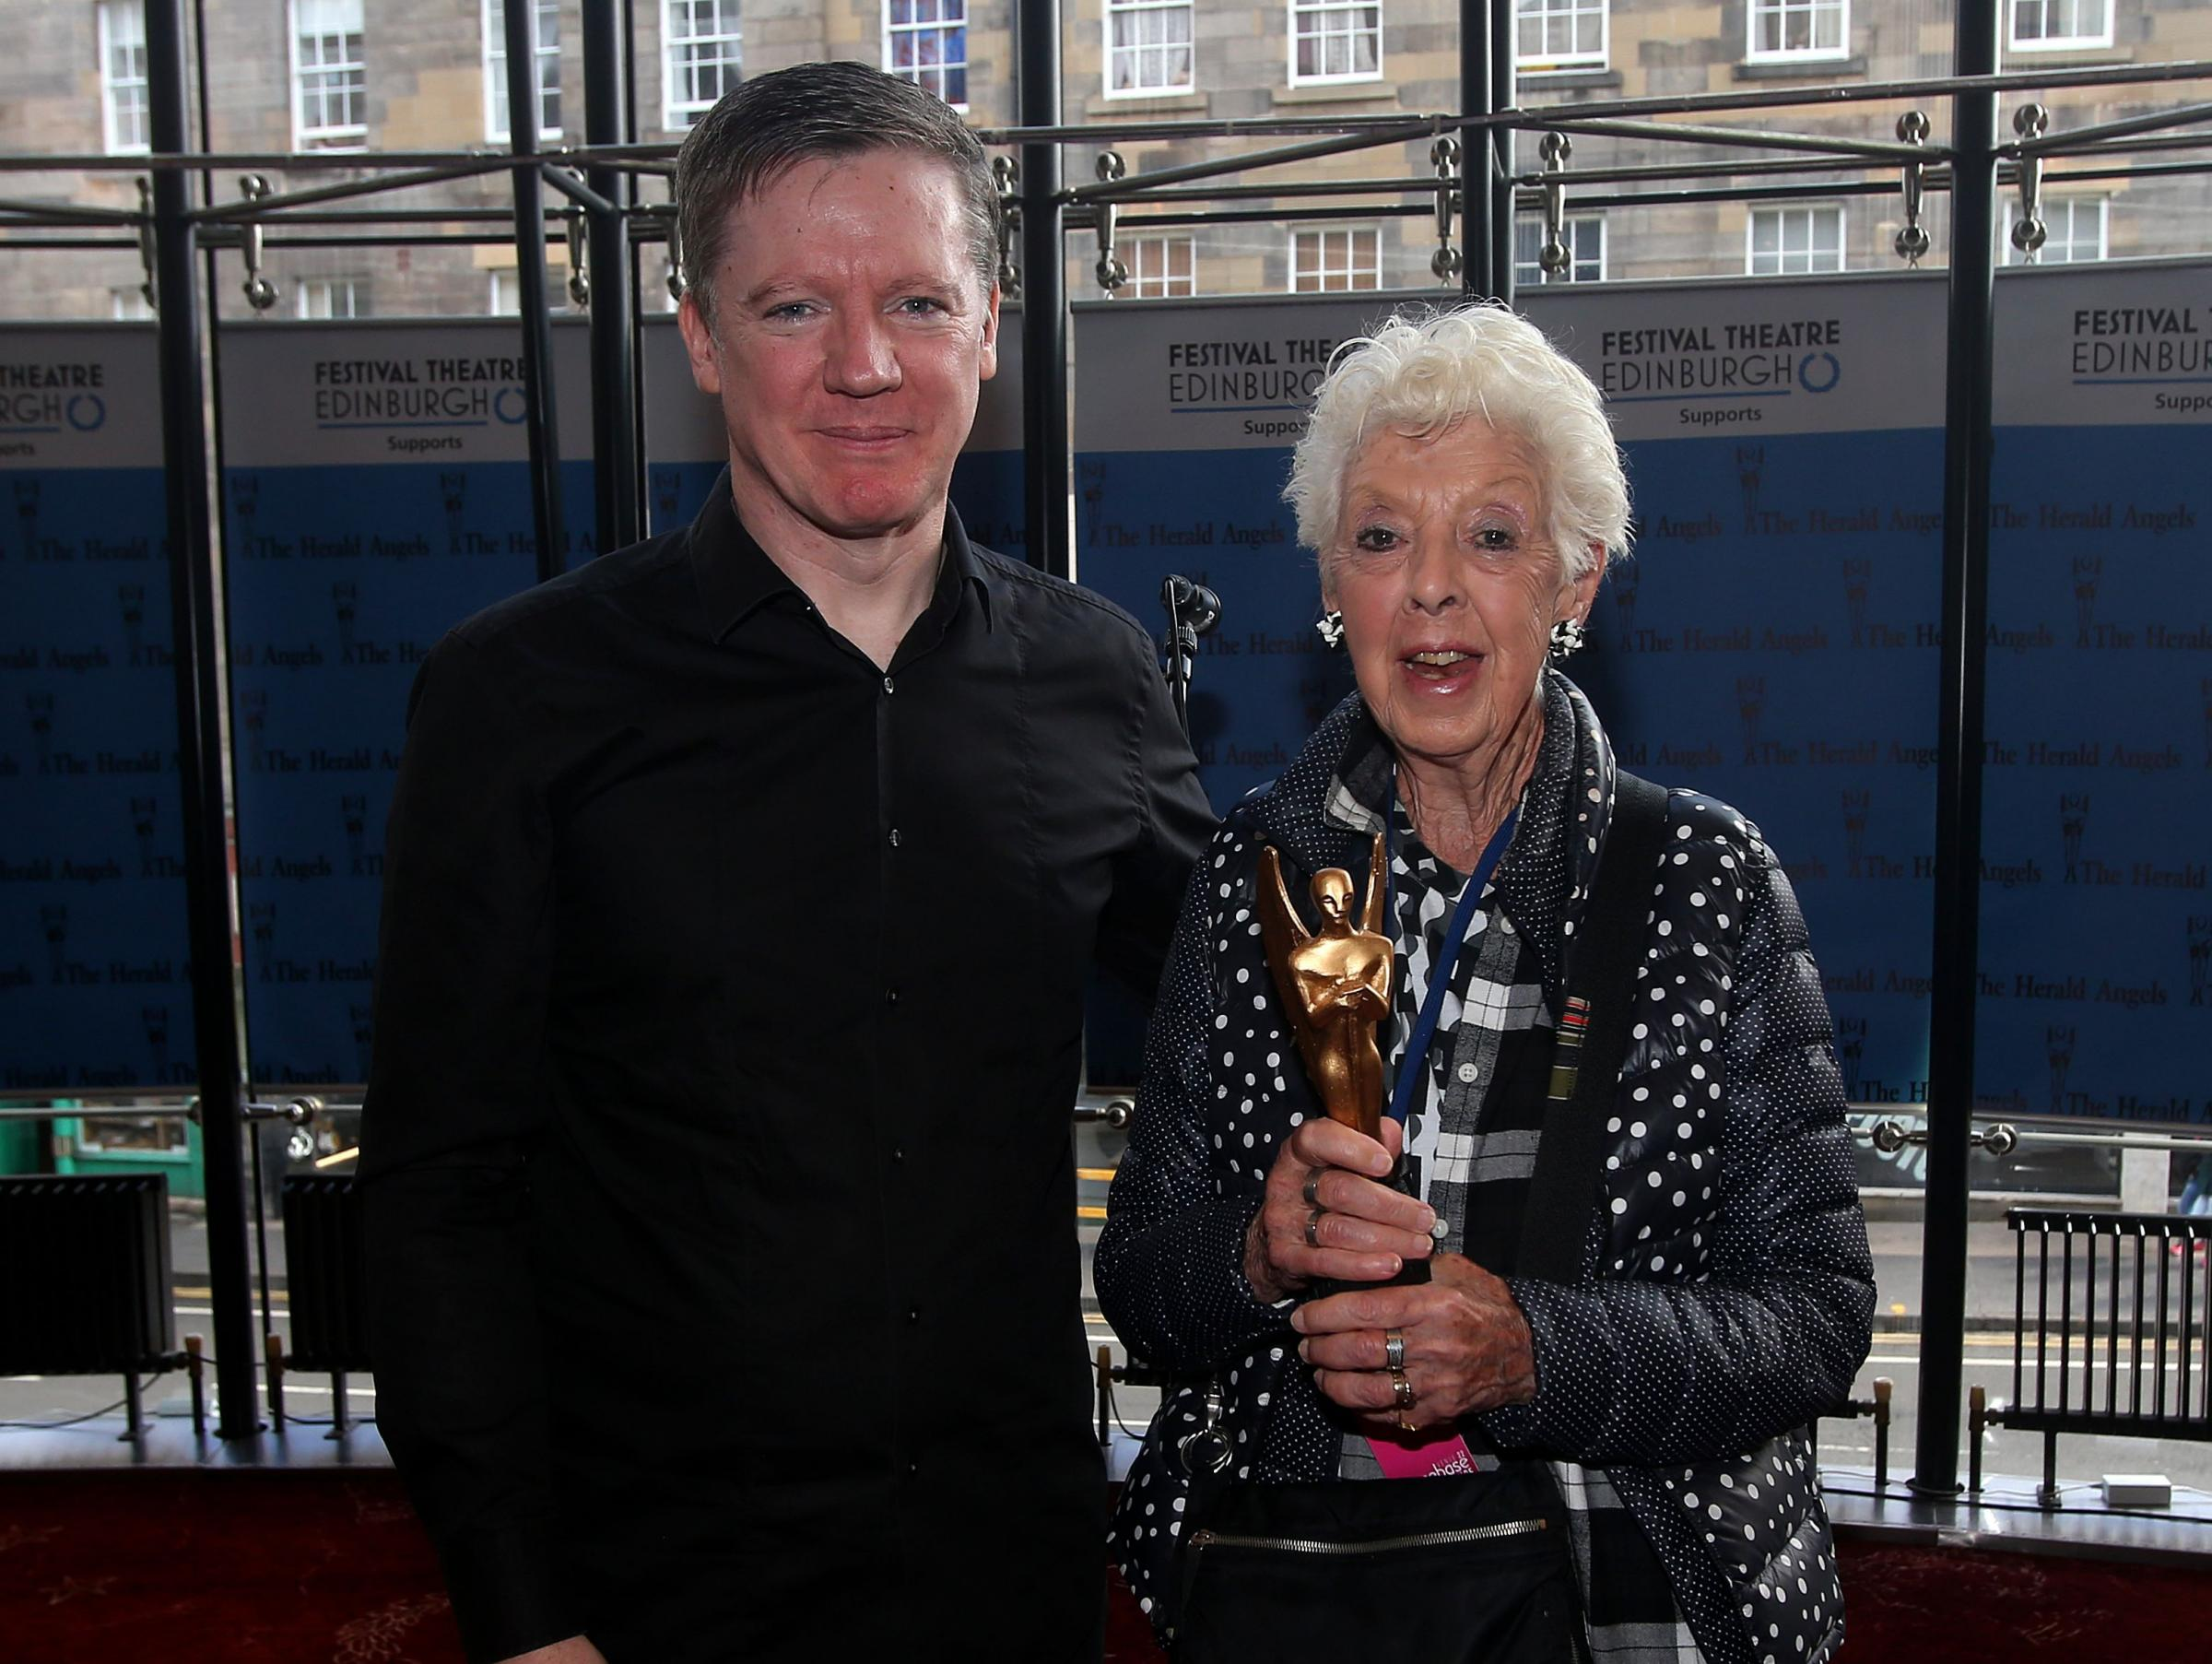 EIF director Fergus Linehan presents a Herald angel award to Valda Setterfield for Lear at Edinburgh Festival Theatre saturday.Pic Gordon Terris/The Herald26/8/17